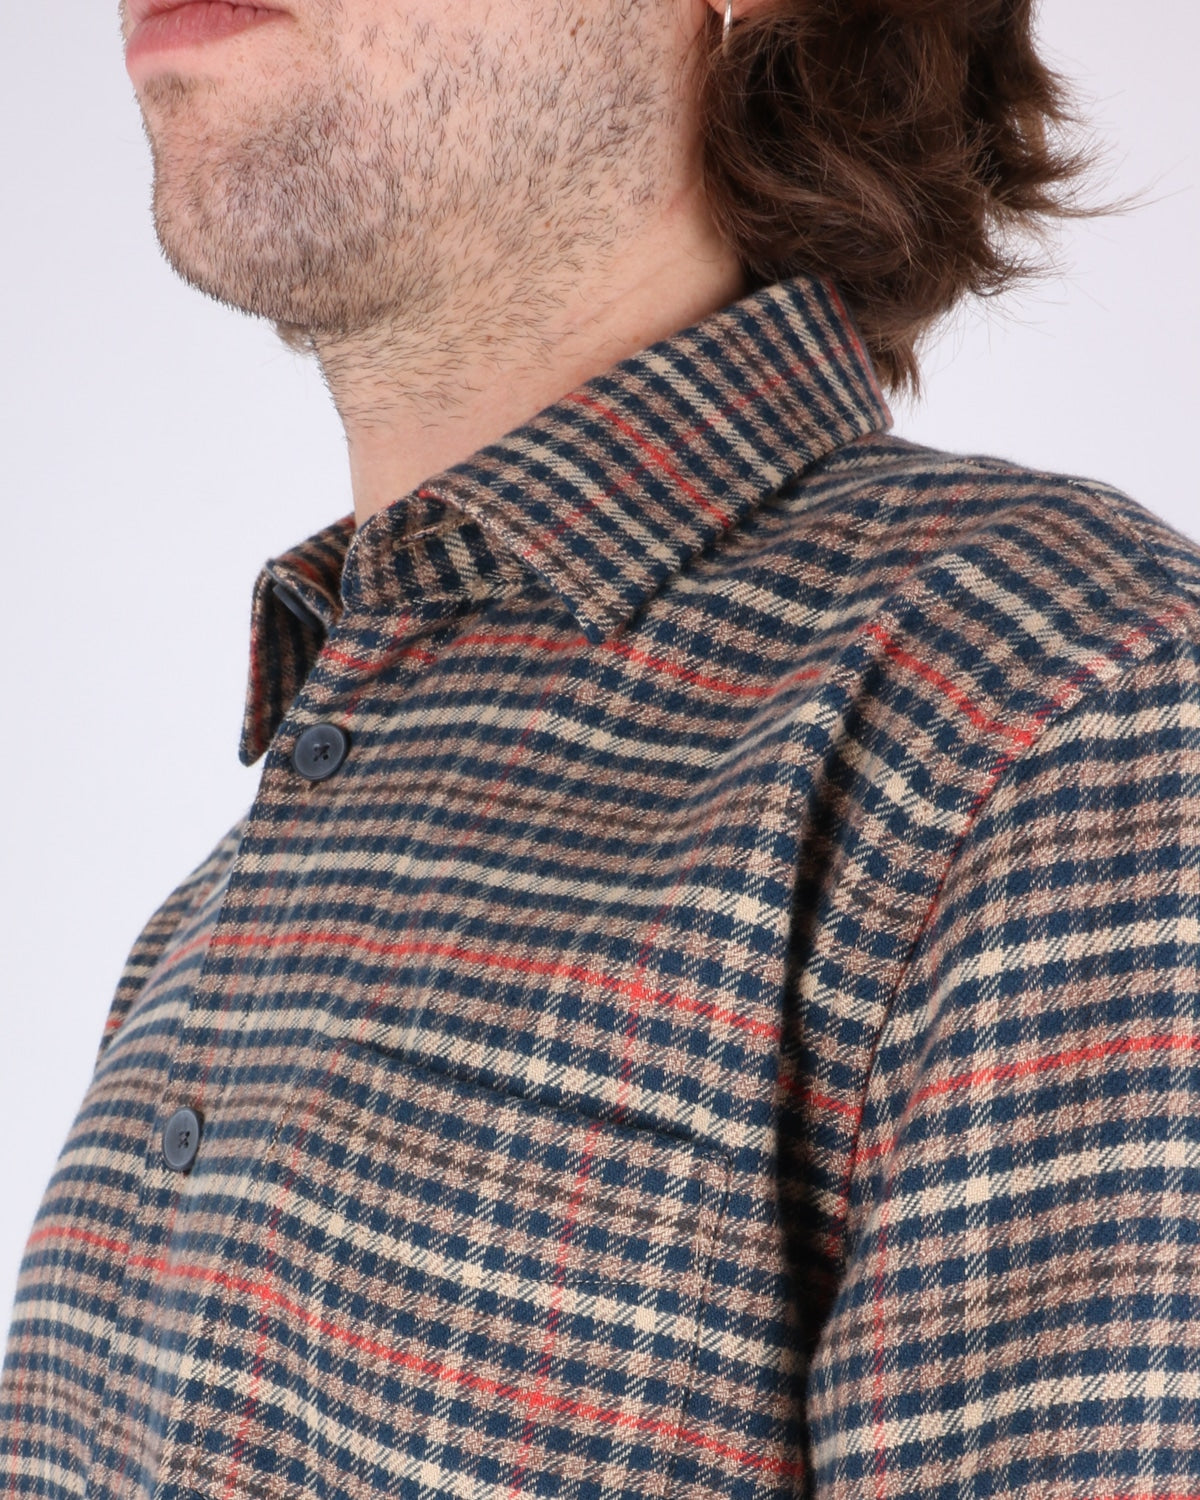 libertine libertine_miracle shirt_twill red check_3_5